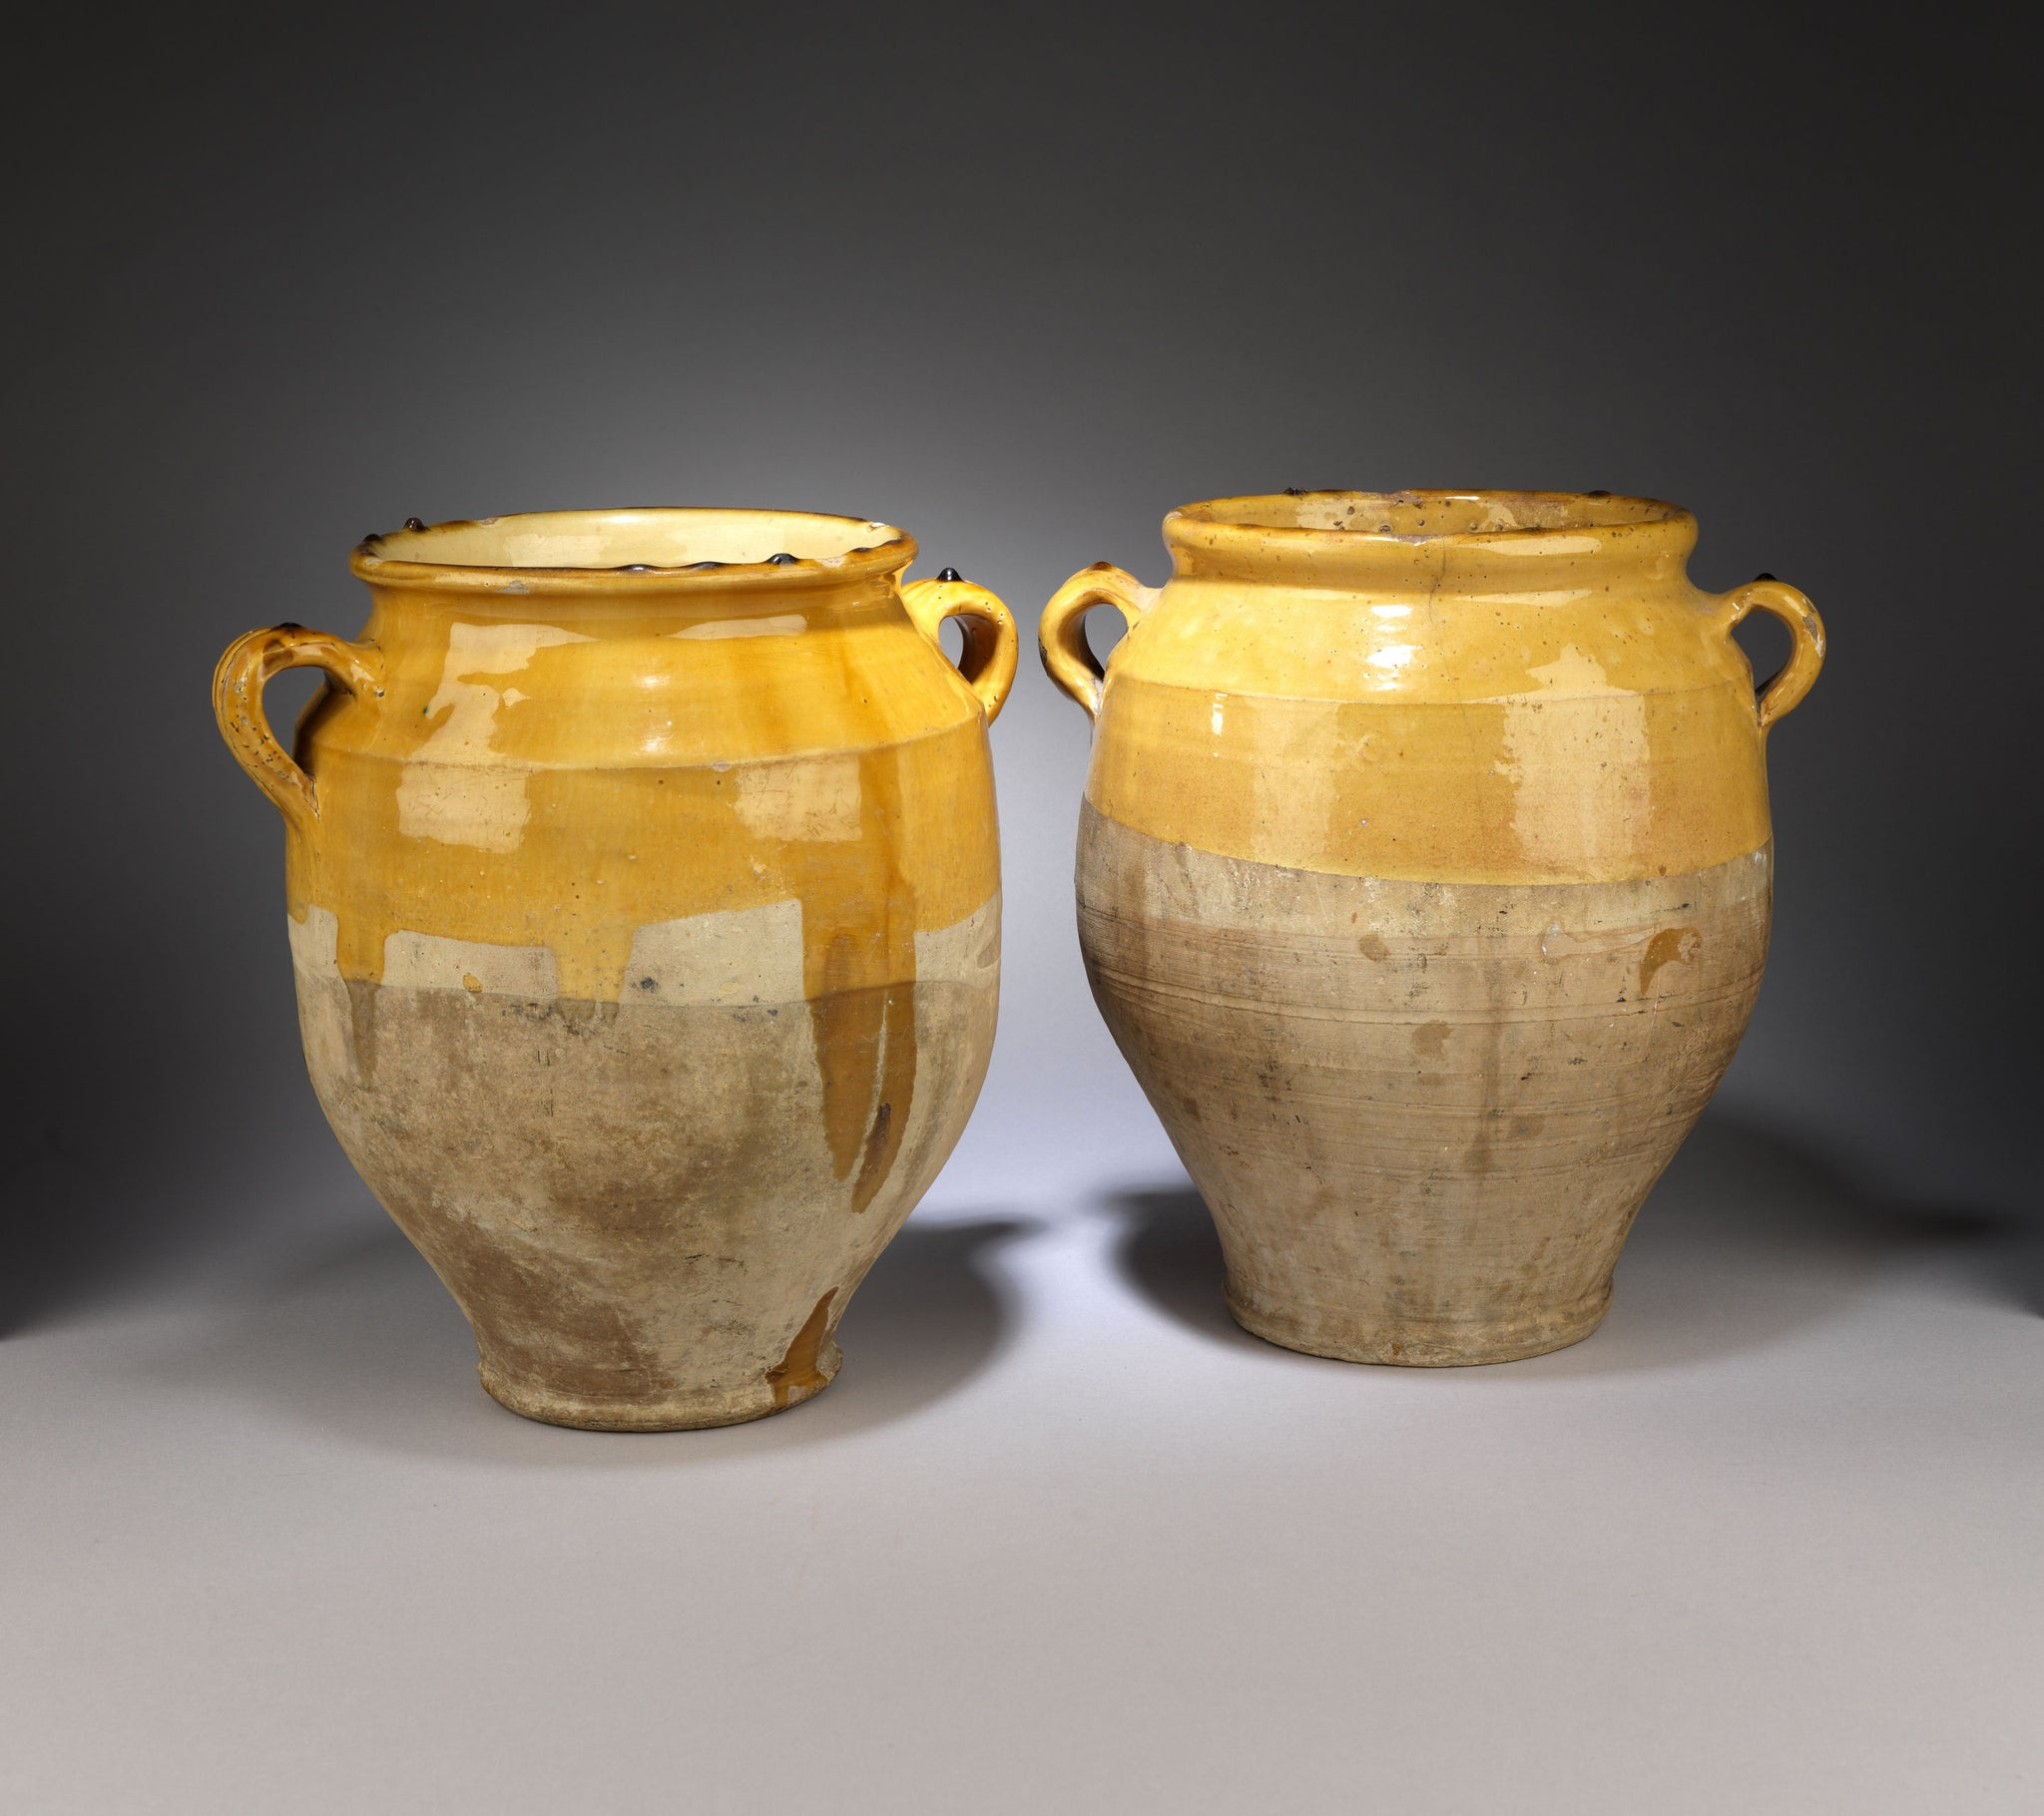 Two Traditional Pale Yellow Glazed Confit Pots